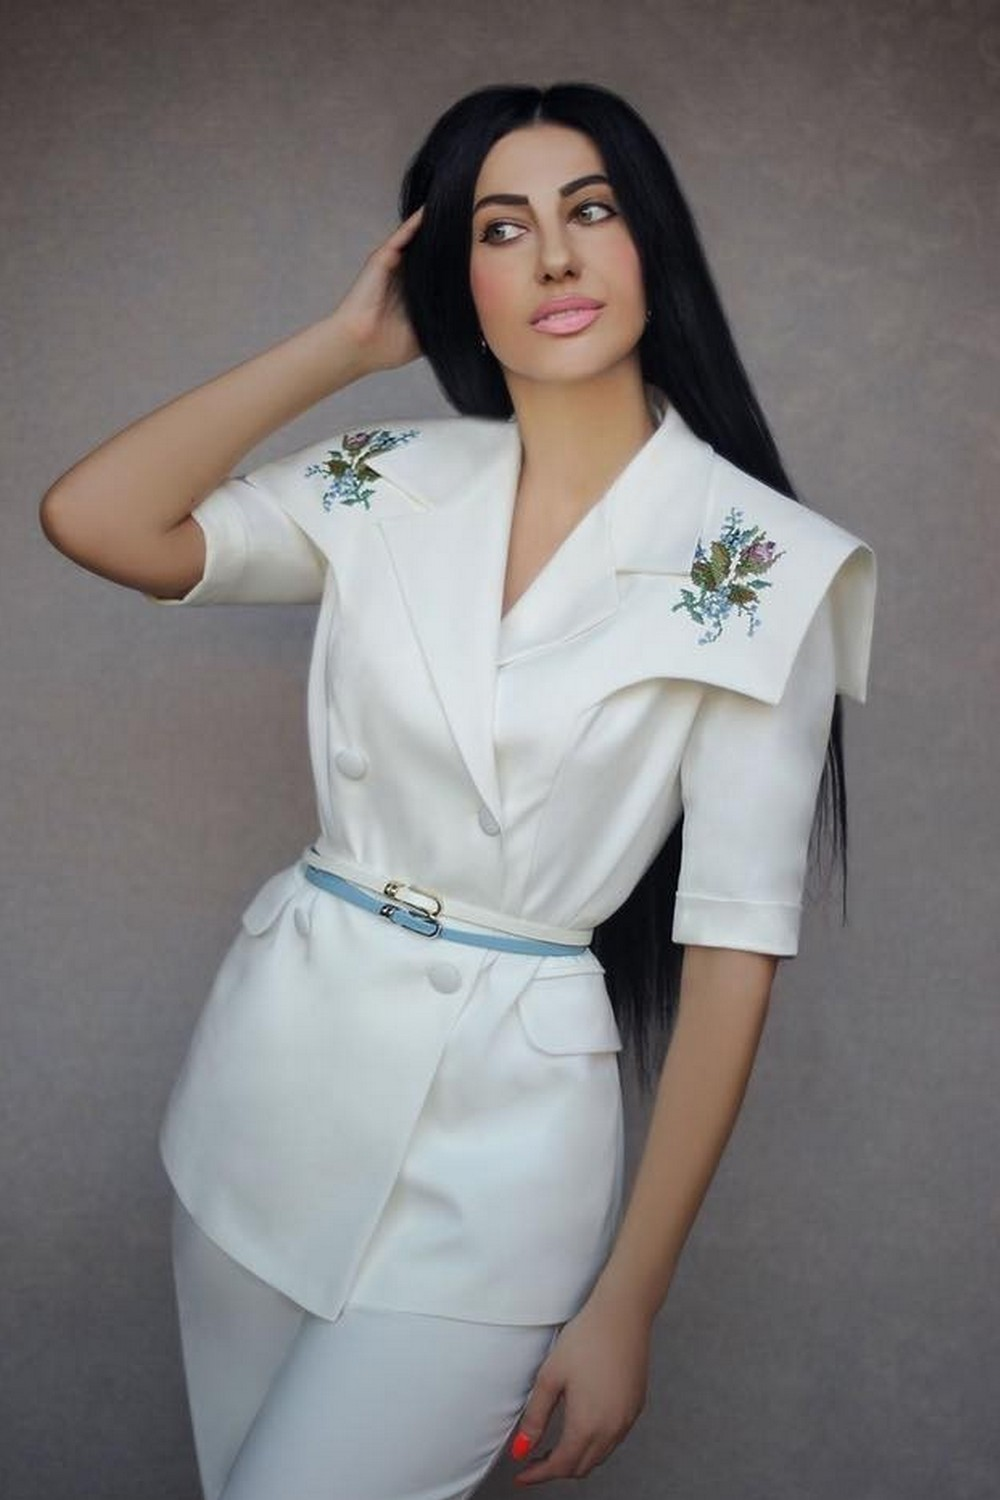 Buy Elegant women's cotton white trouser suit with embroidery, Comfortable summer suit